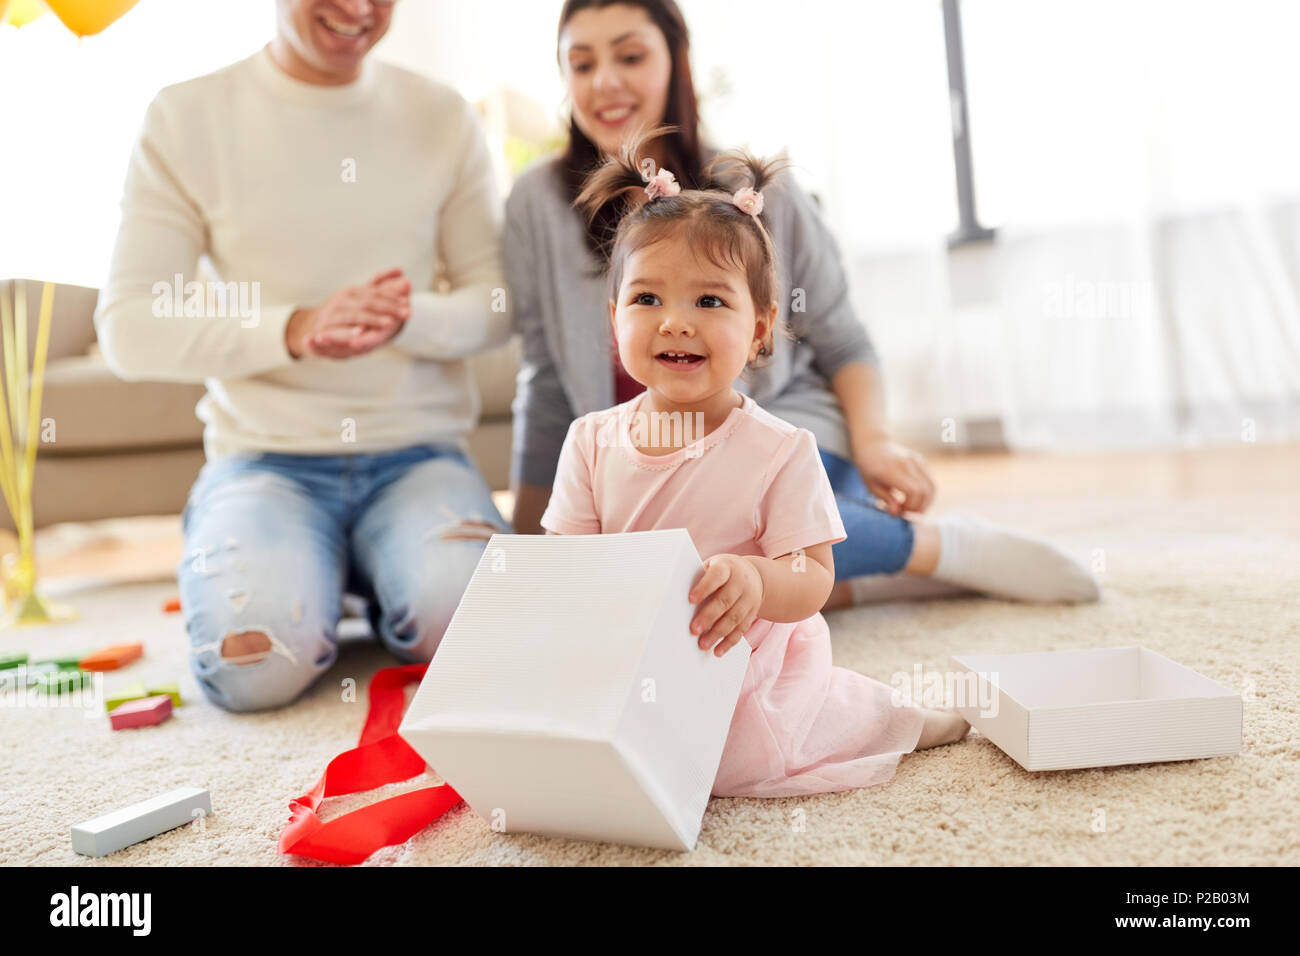 baby girl with birthday gift and parents at home - Stock Image